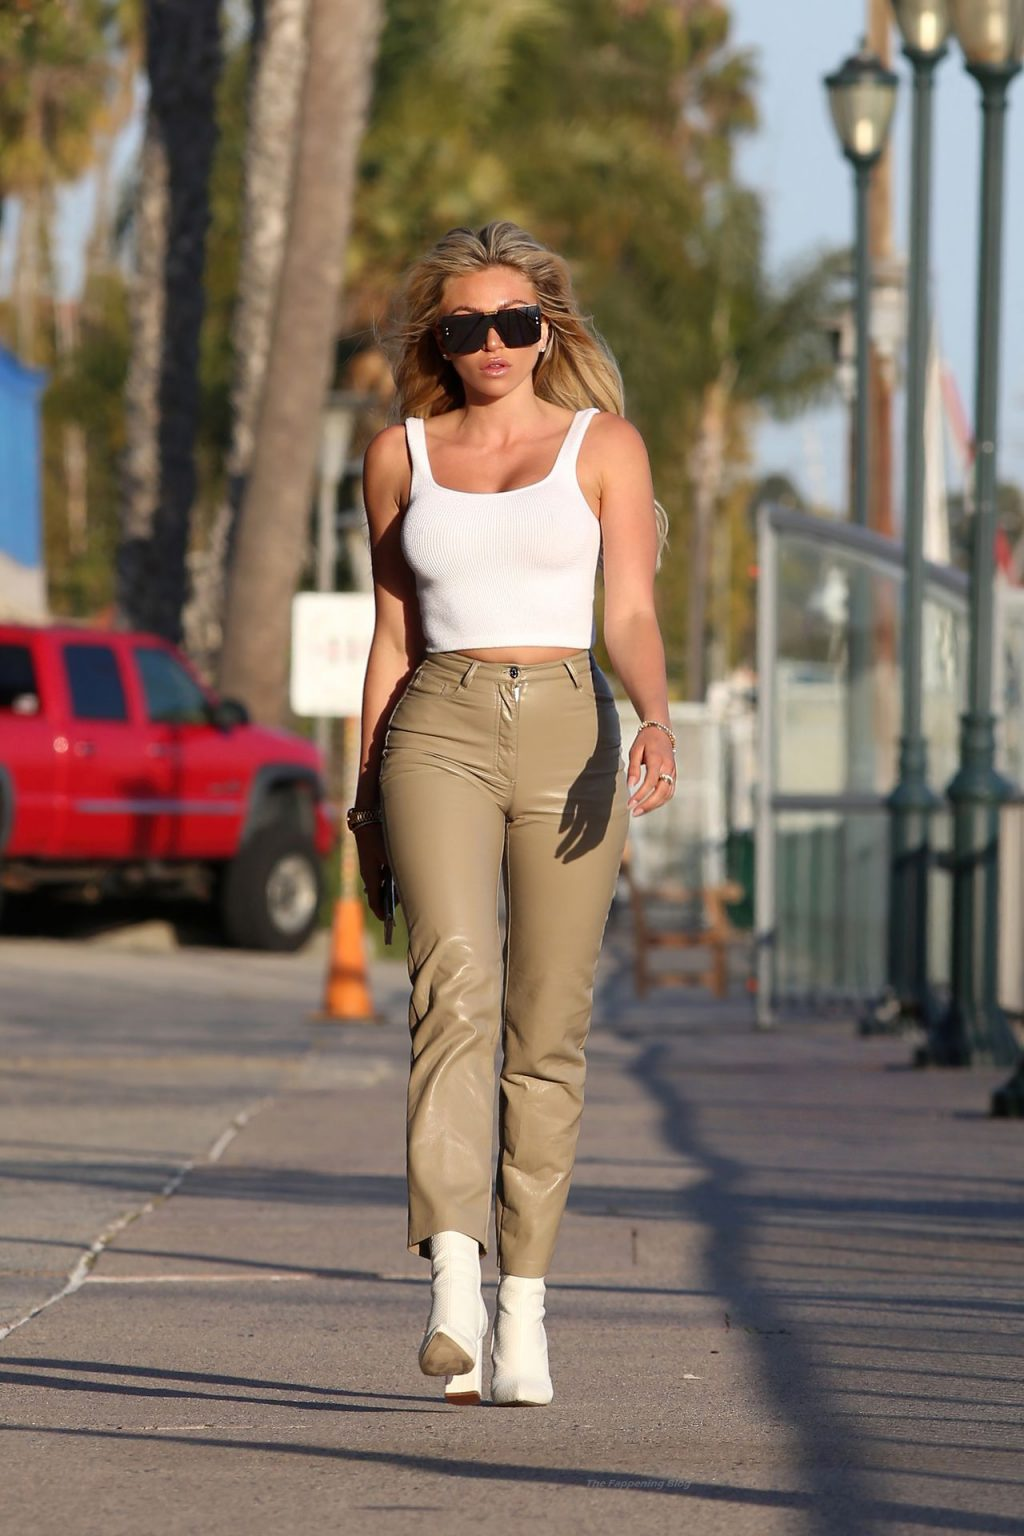 Khloe Terae Commands Attention While Taking a Stroll on The Broad Walk Outside The Ritz Hotel in Marina Del Rey (8 Photos)